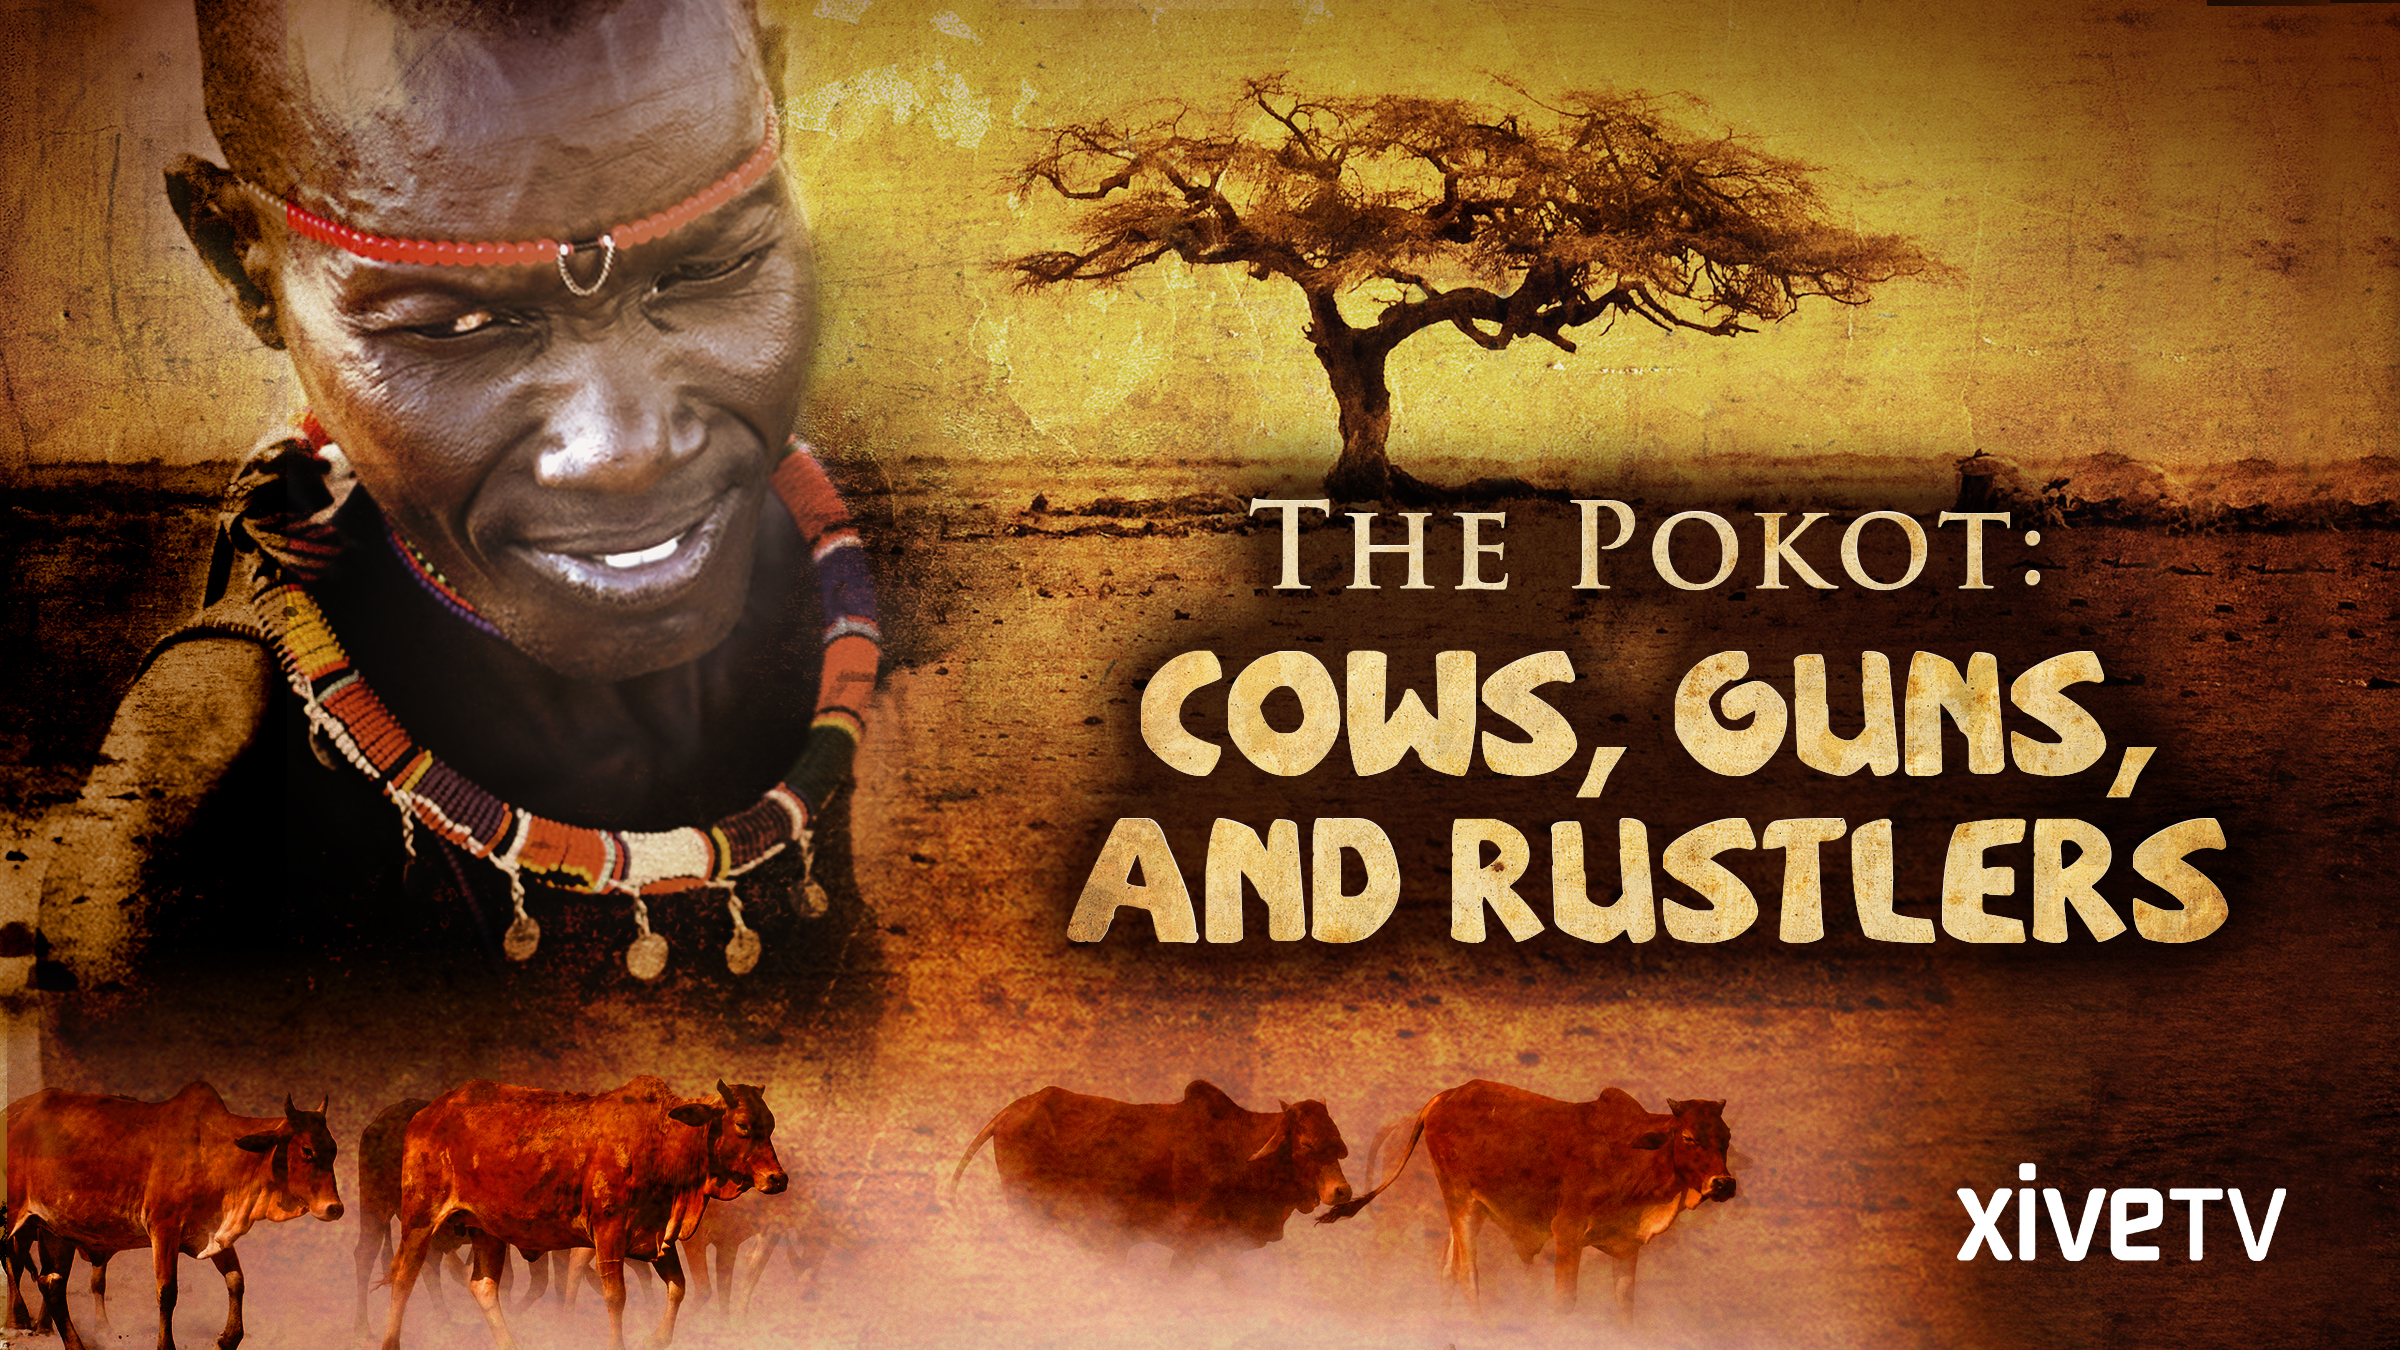 The Pokot: Cows, Guns, and Rustlers on Amazon Prime Video UK